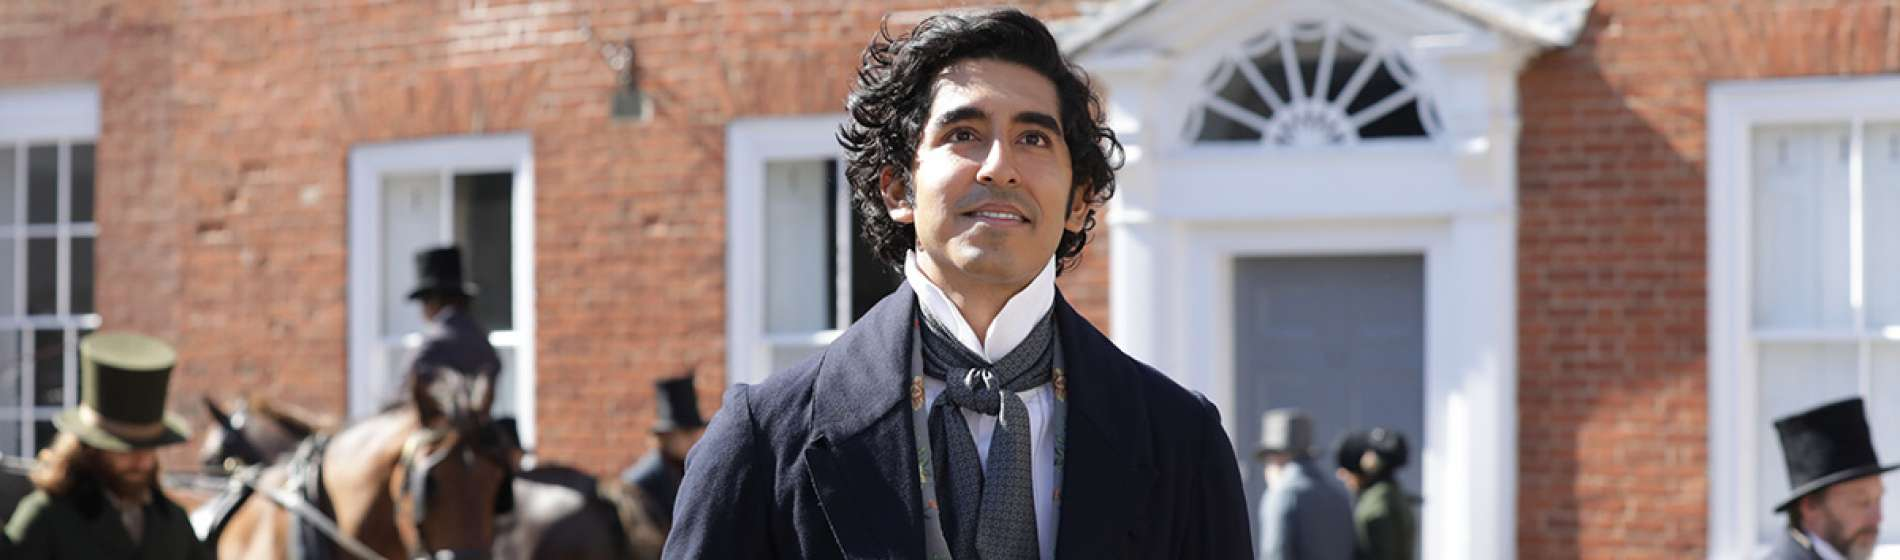 TIFF 2019 The Personal History of David Copperfield